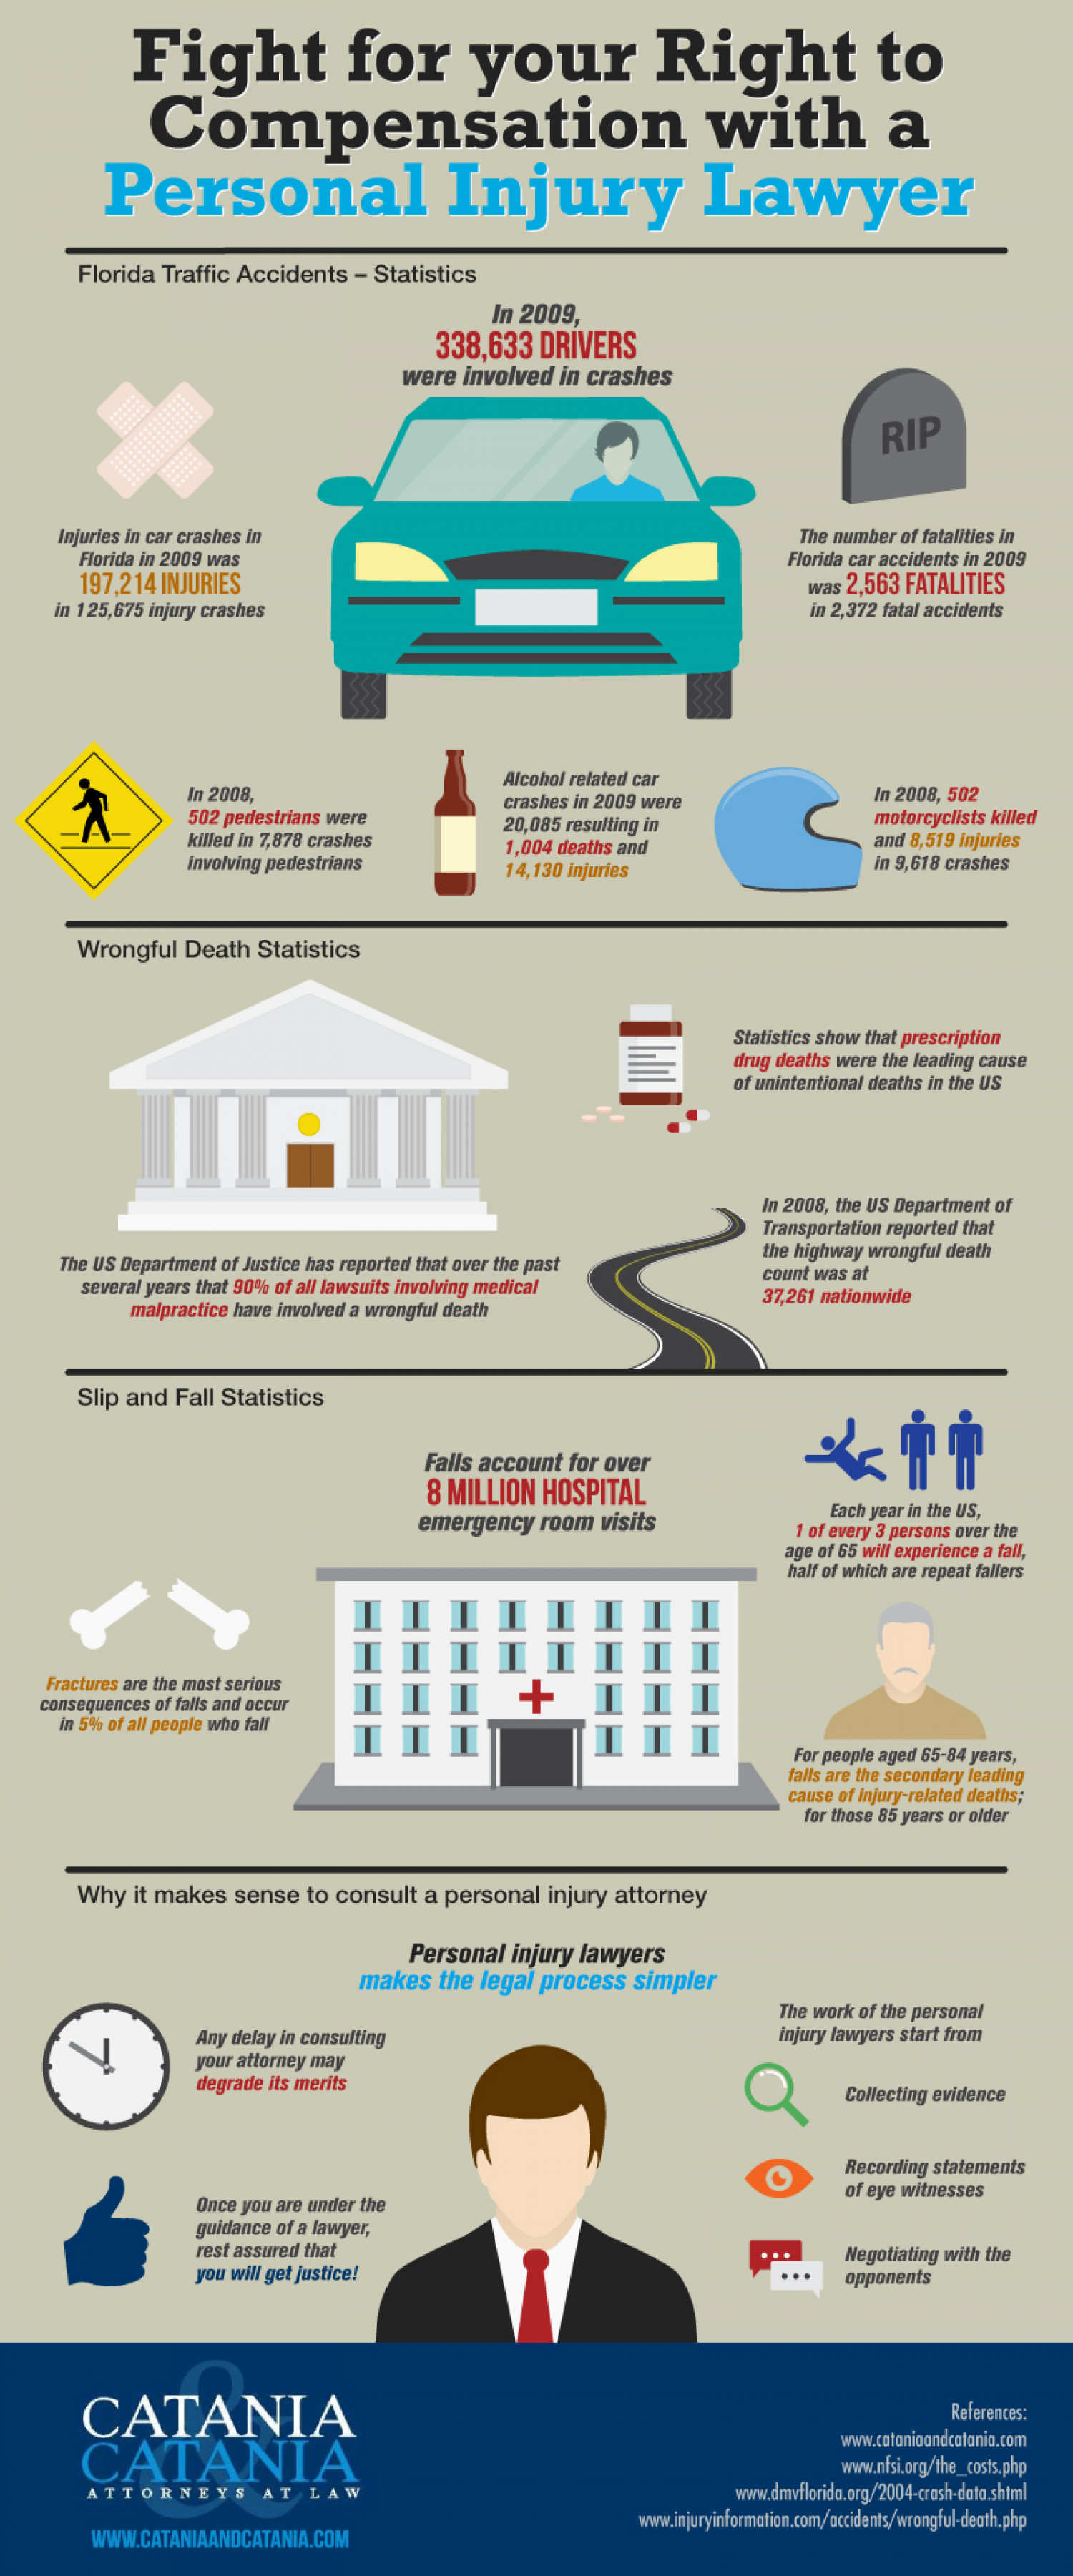 Fight for Your Right to Compensation with a Personal Injury Lawyer Infographic